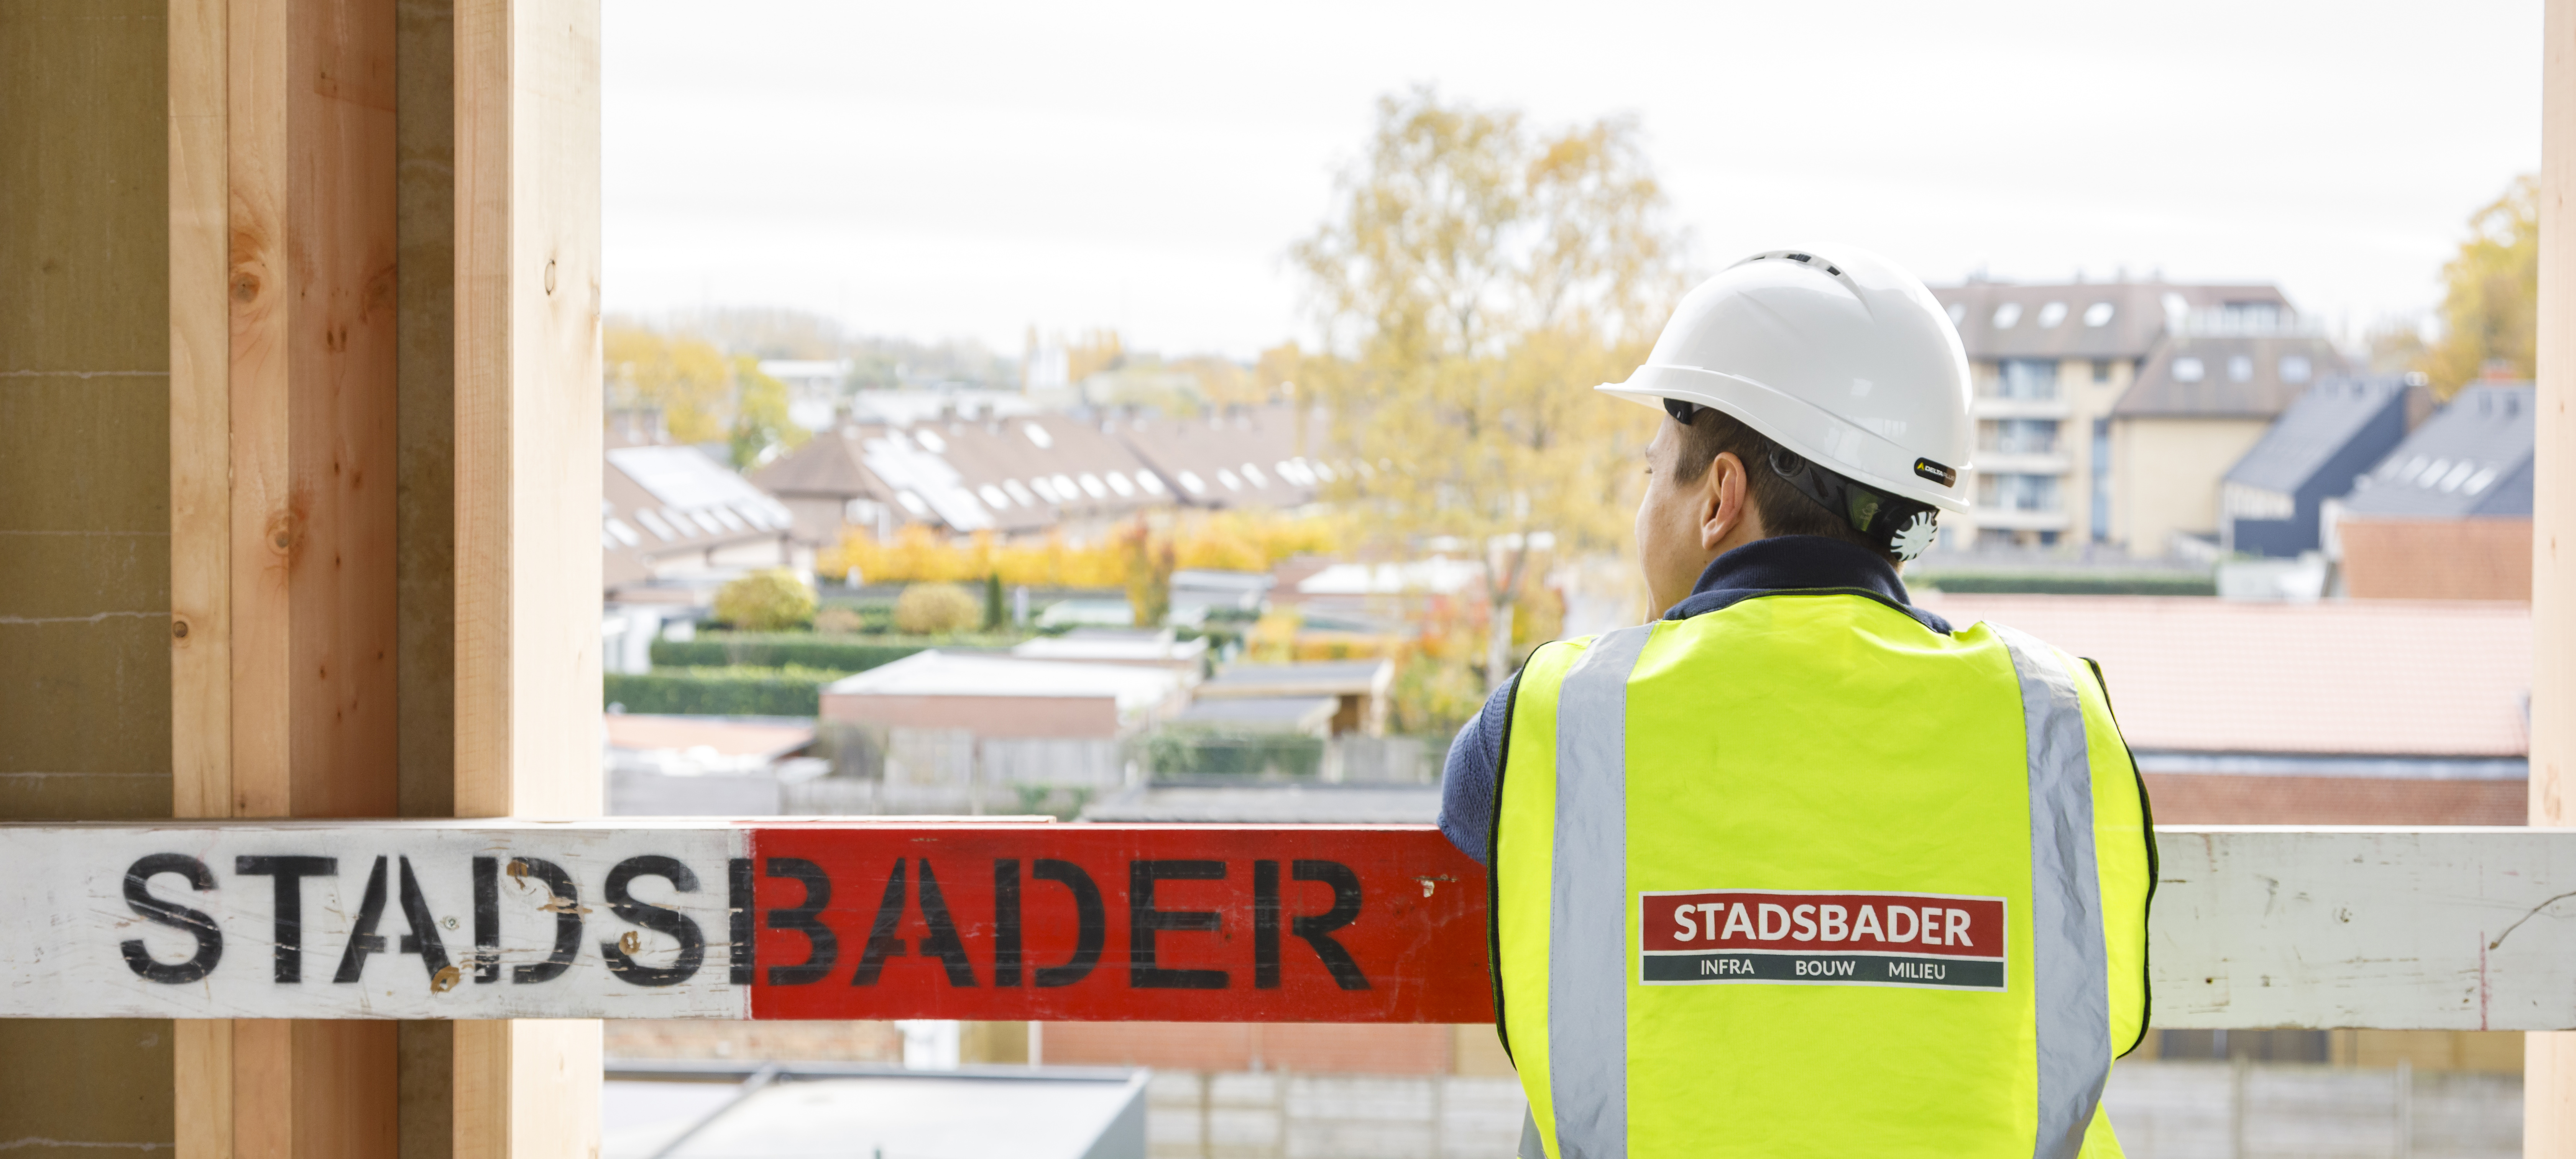 Stadsbader creates utility concepts with an added value for everybody.